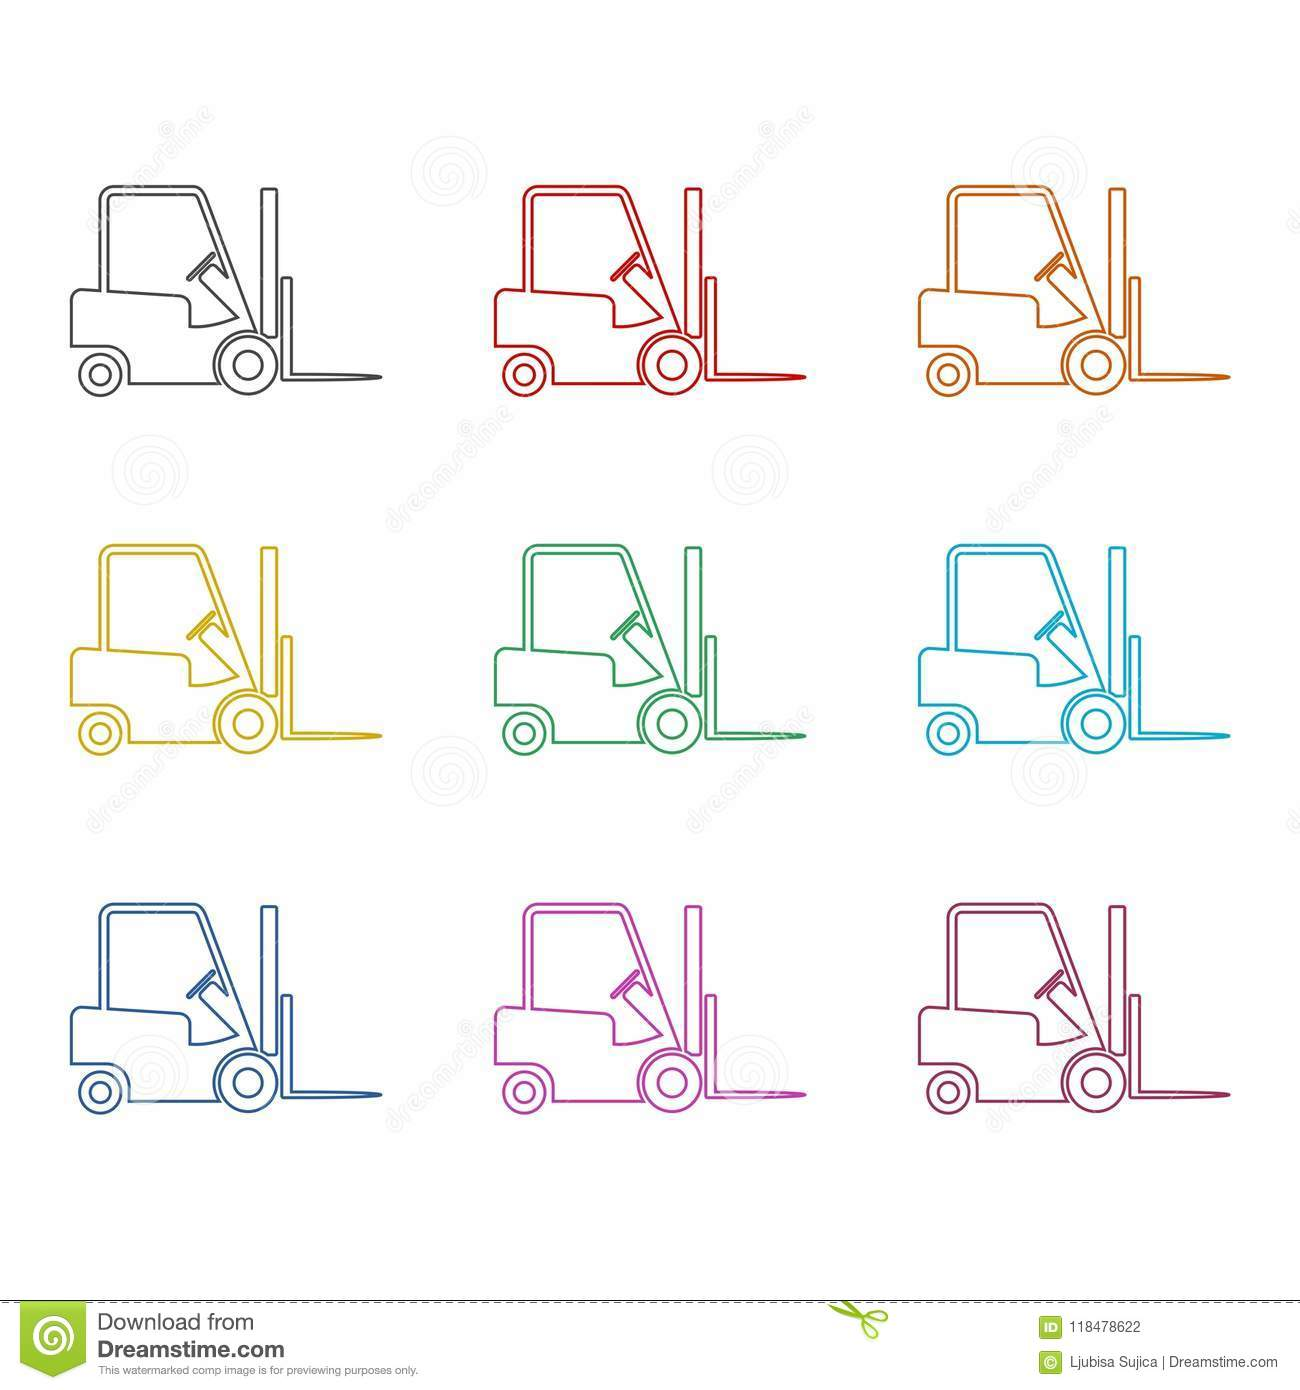 Simple Fork Lift Diagram Reinvent Your Wiring For Hyster 50 Forklift Icon Truck Side Silhouette Color Icons Set Stock Rh Dreamstime Com S50xm